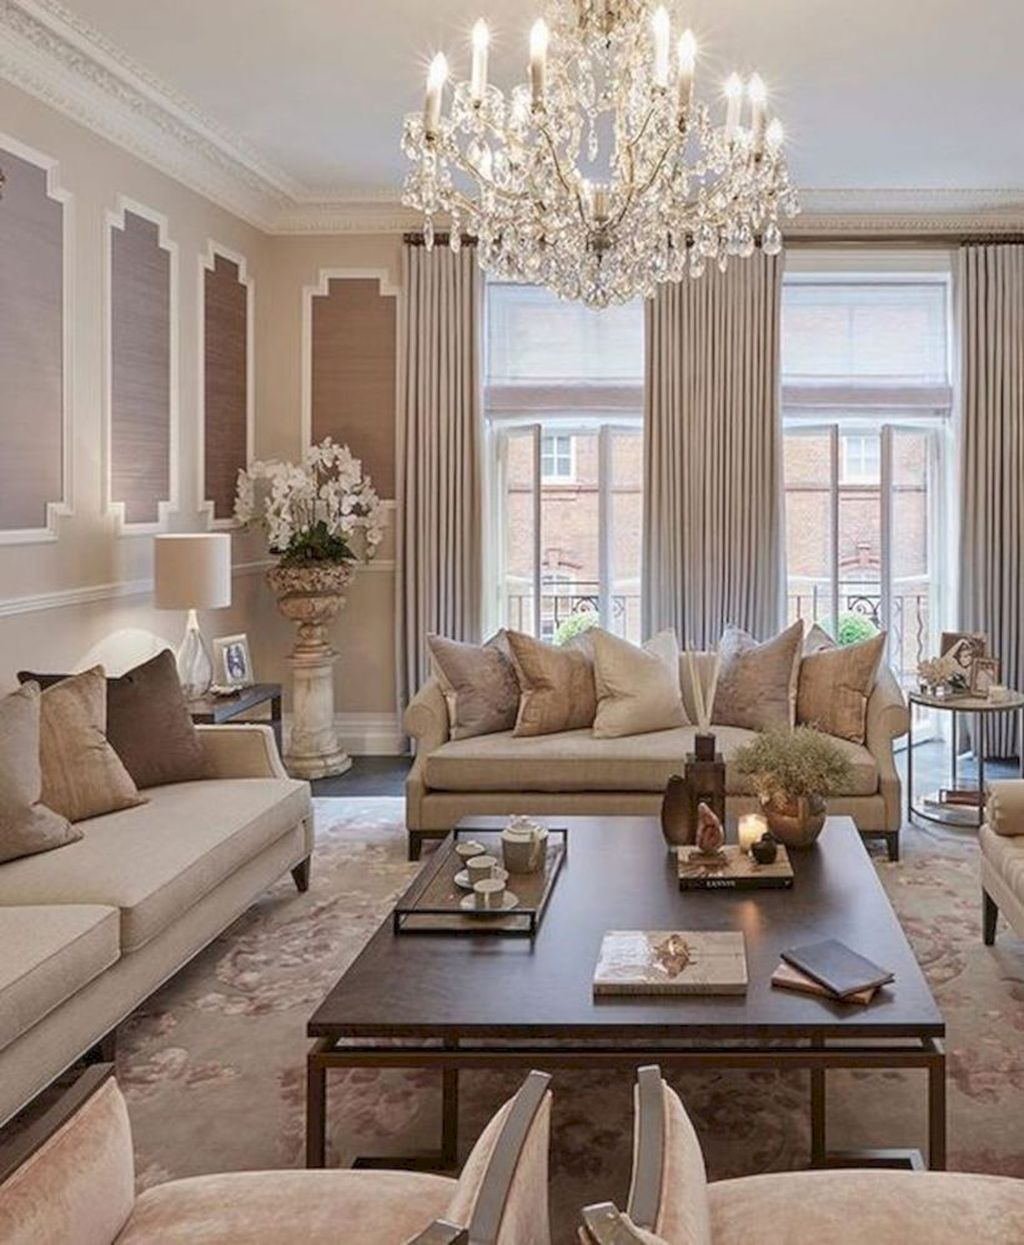 40 Luxurious And Elegant Living Room Design Ideas Homishome